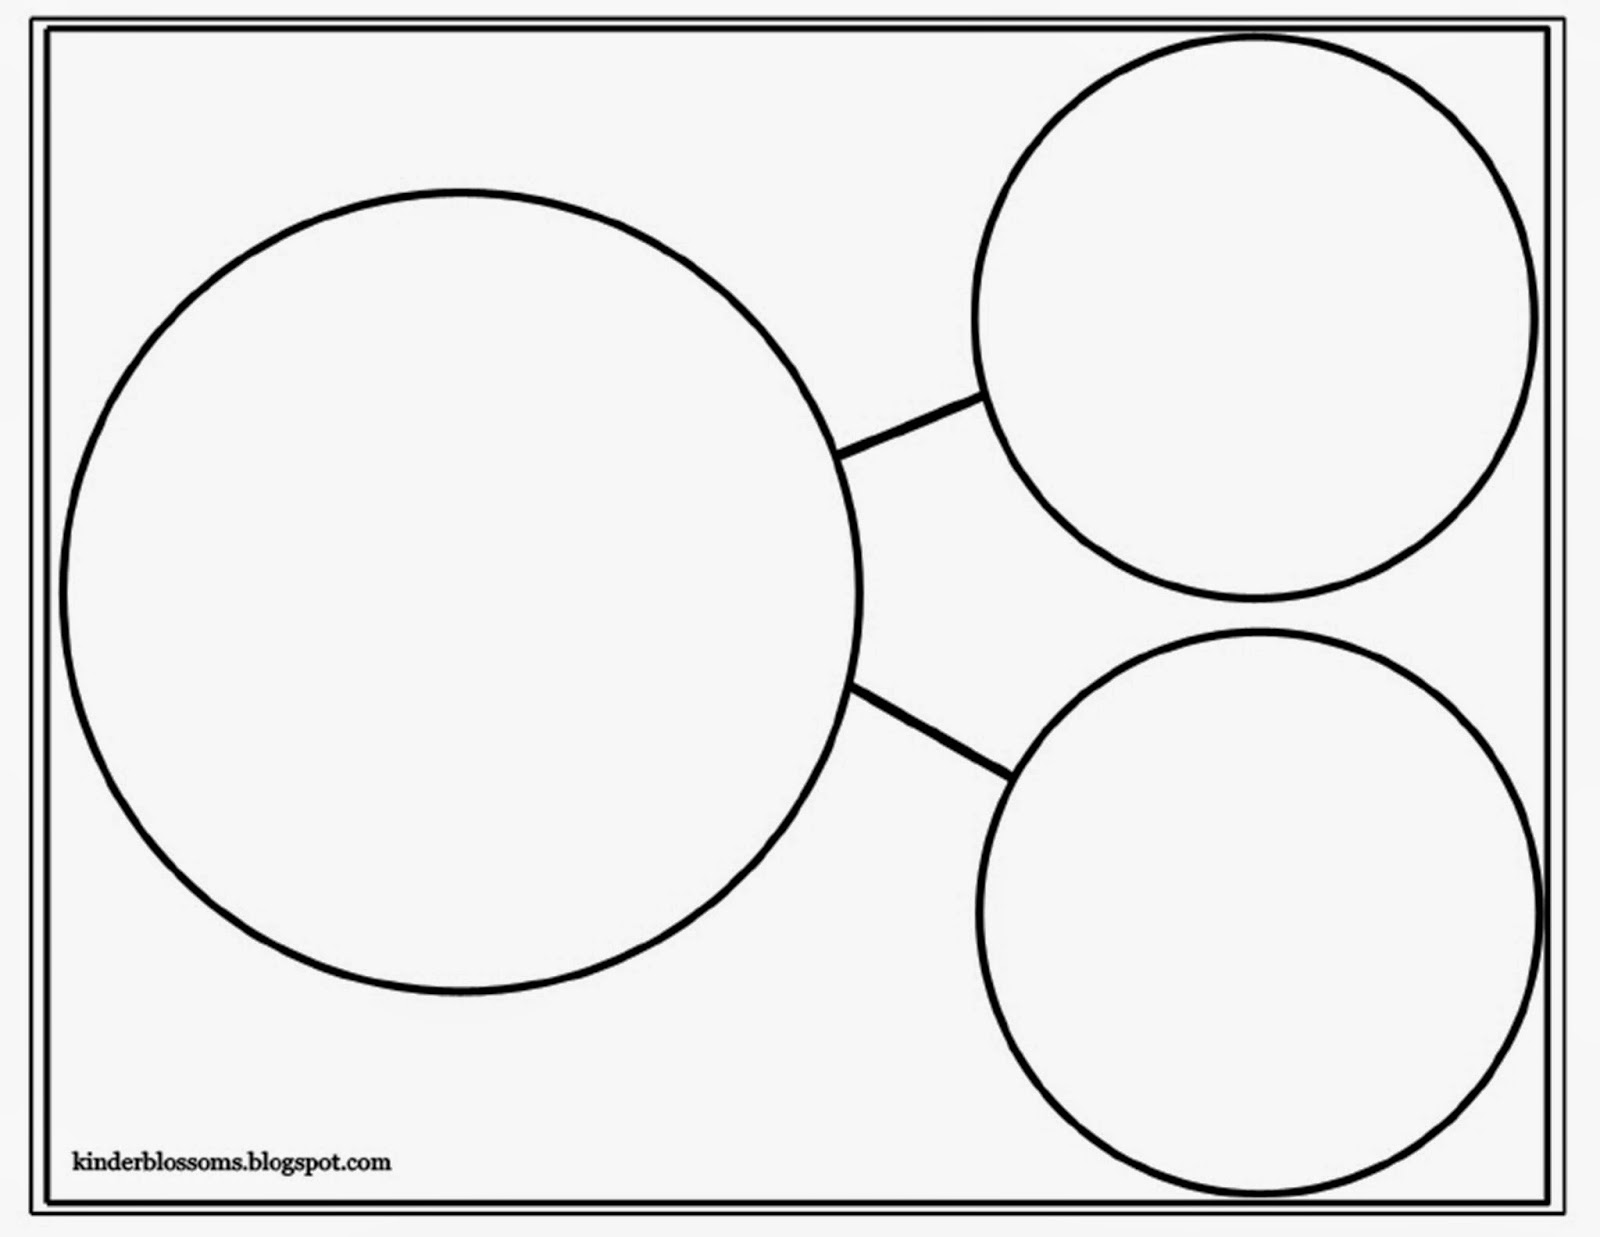 Christina's Kinder Blossoms: Number Bonds in kindergarten